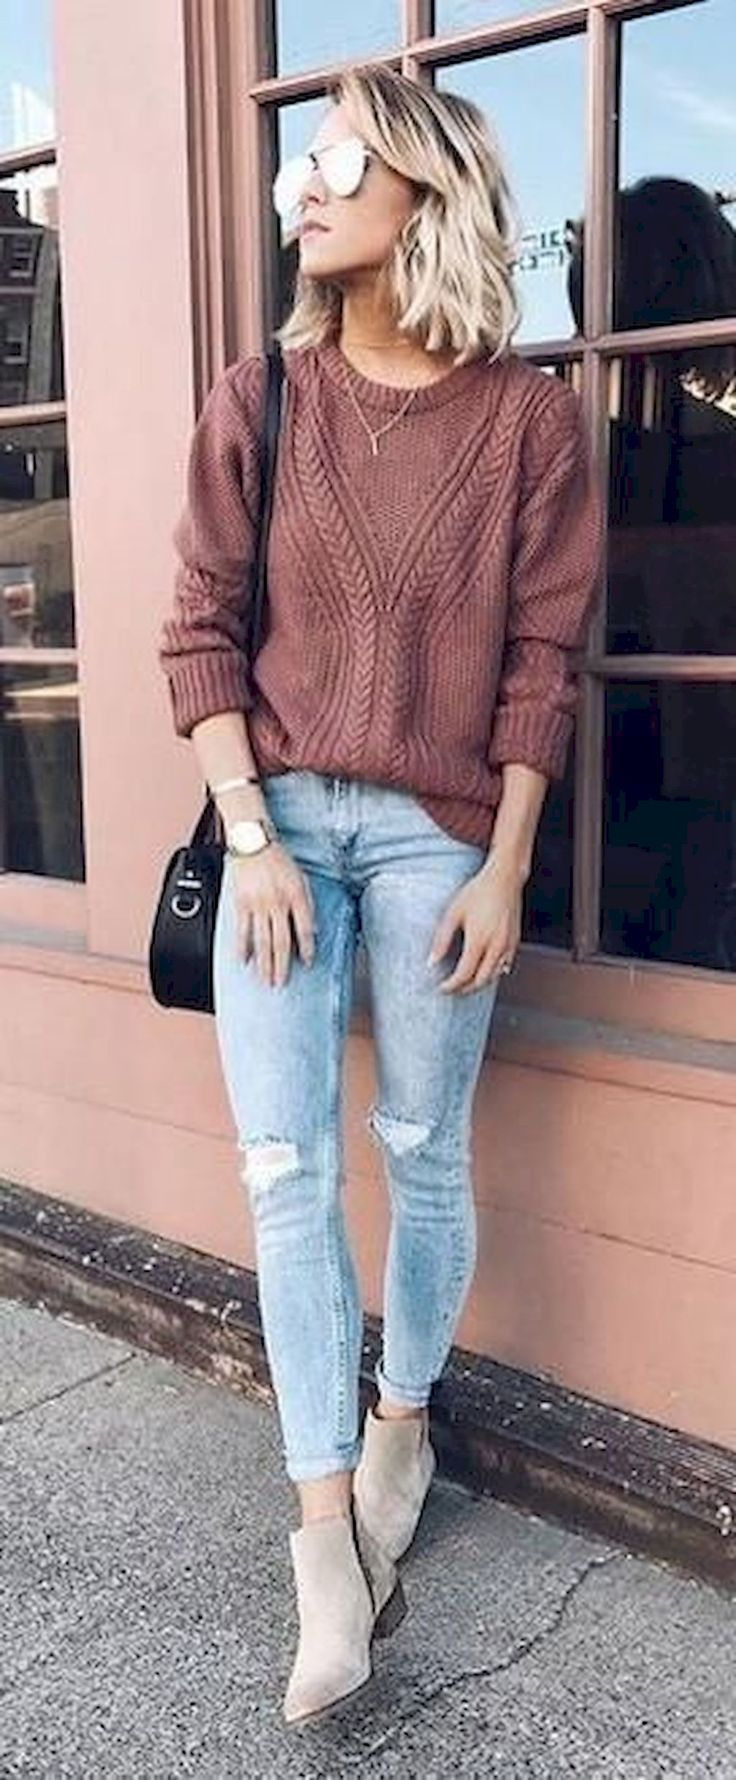 Best 35 Fashionable and Comfy Fall Street Style Ideas https://stiliuse.com/35-fashionable-comfy-fall-street-style-ideas